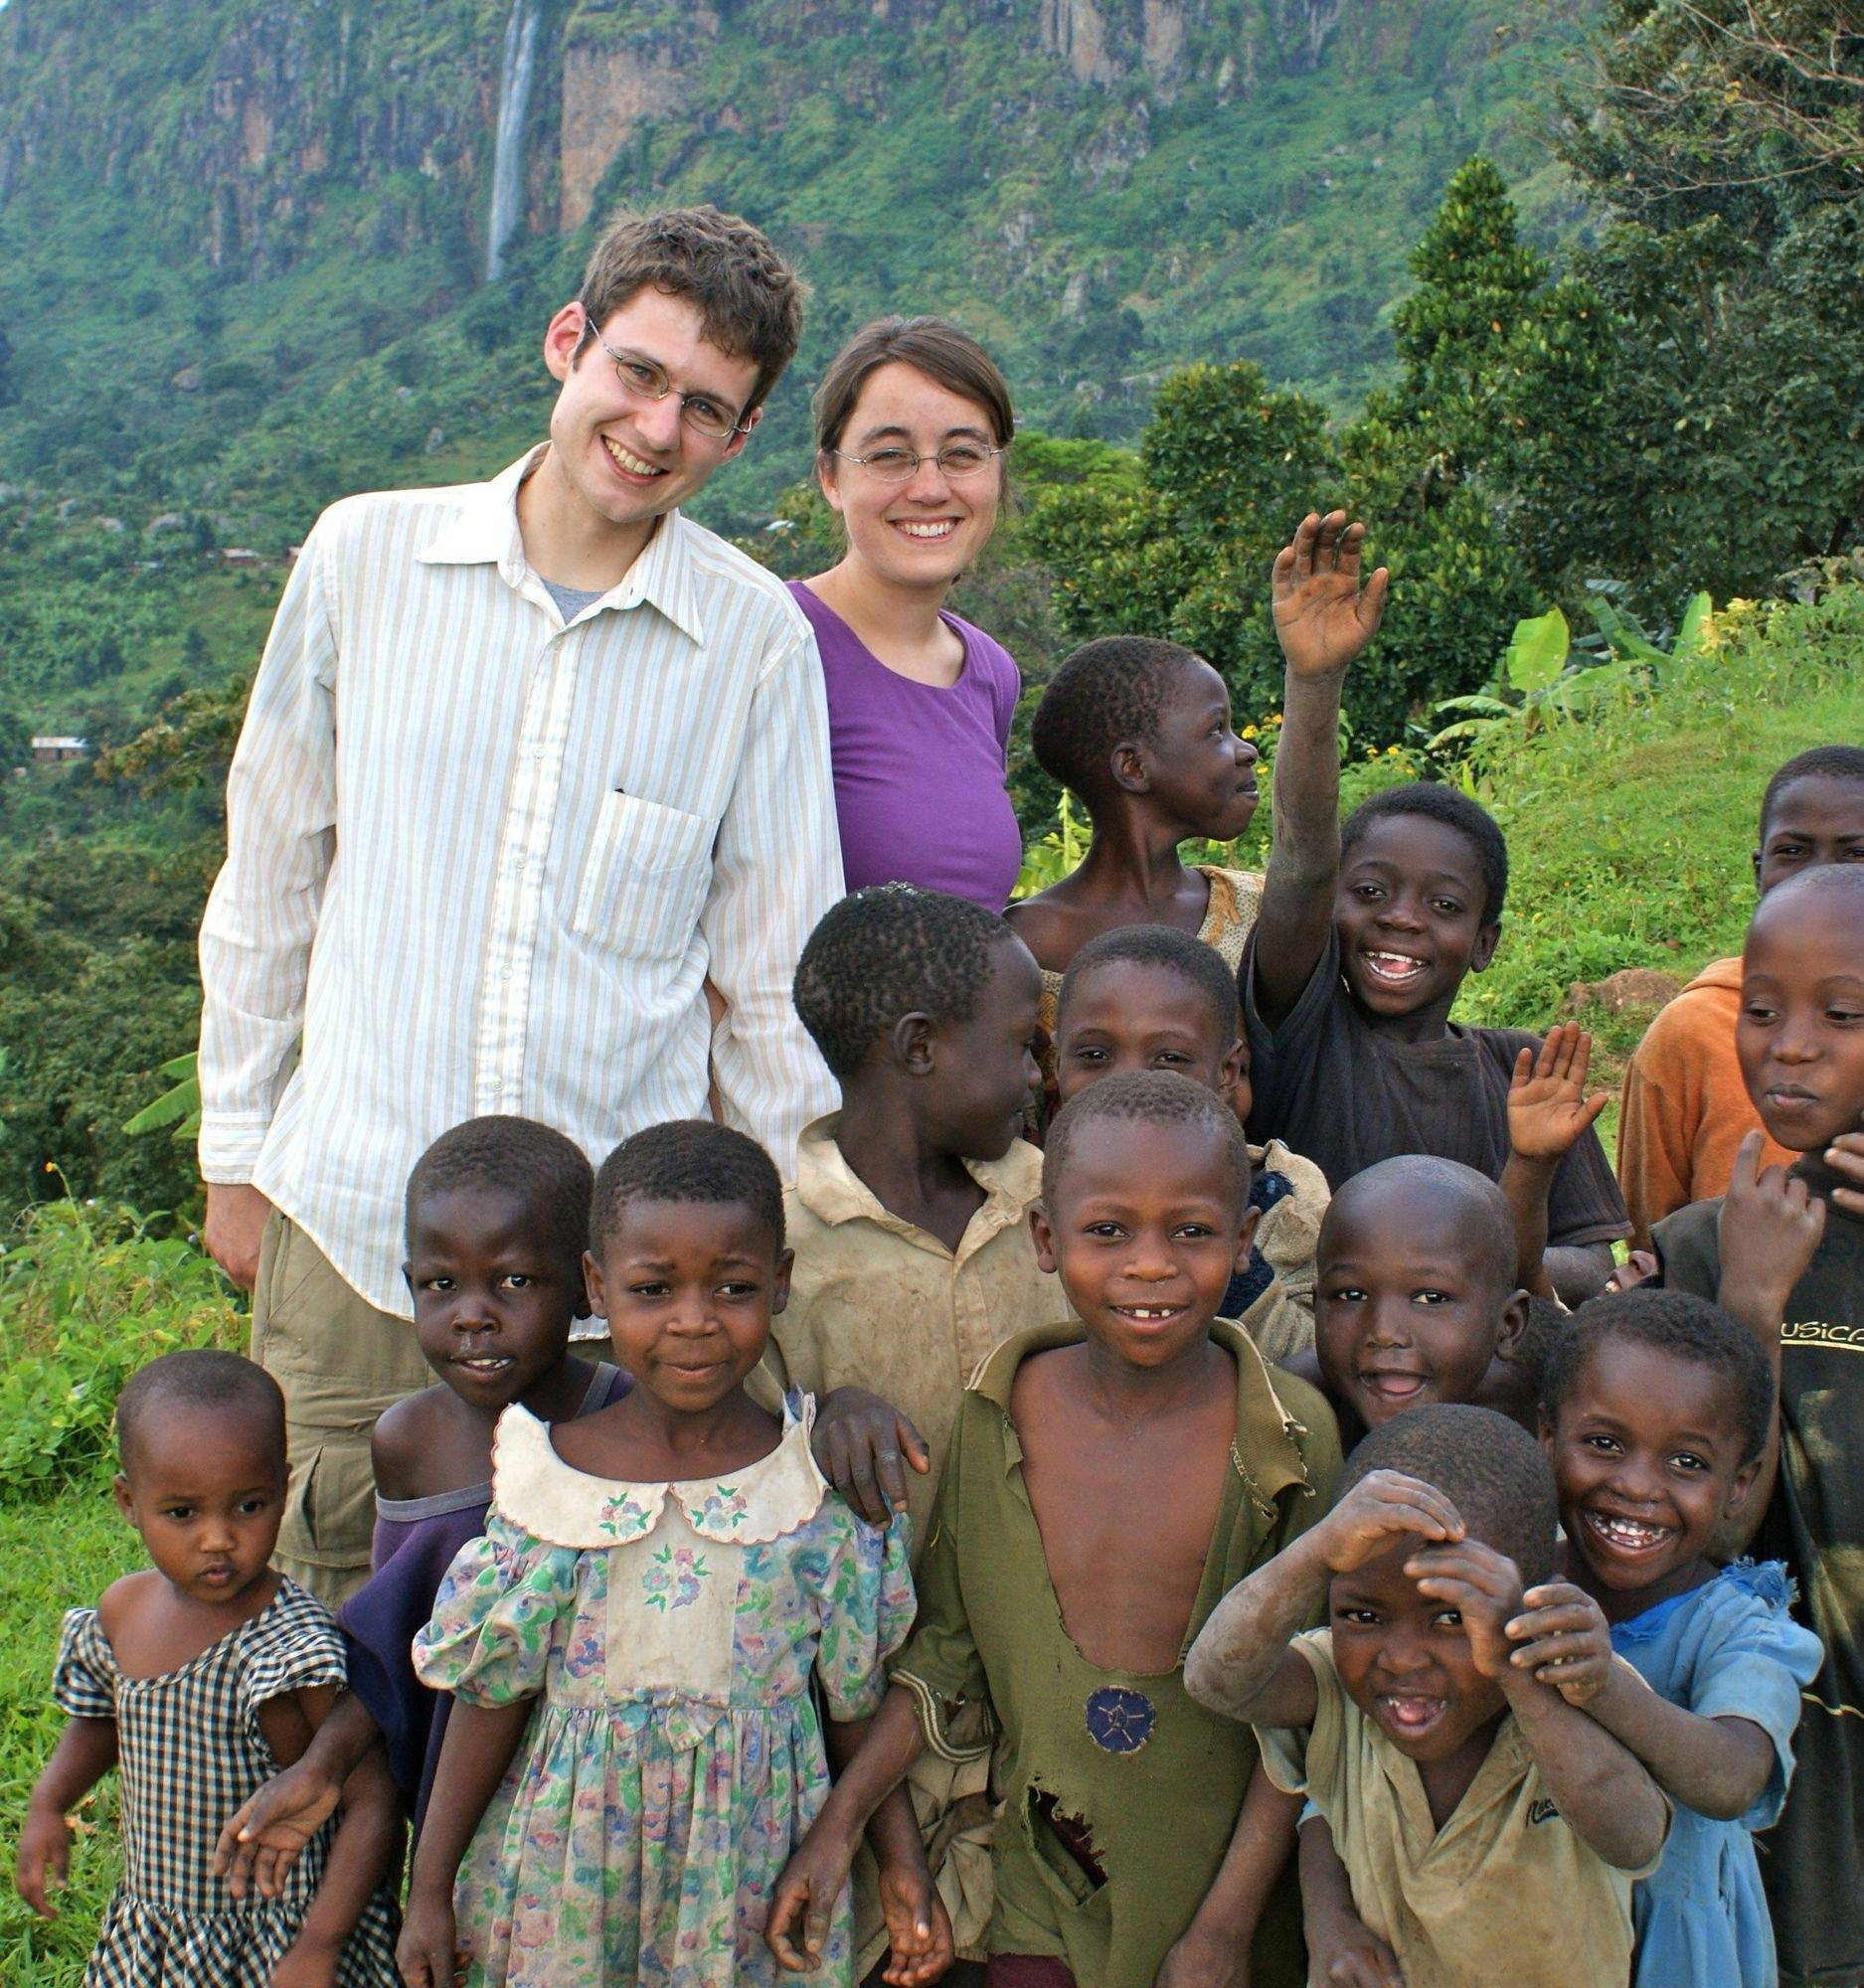 Jim and Margaret Guzzaldo with several children from a Ugandan village during trip in late 2008. They are both 1999 graduates of St. Charles High School.